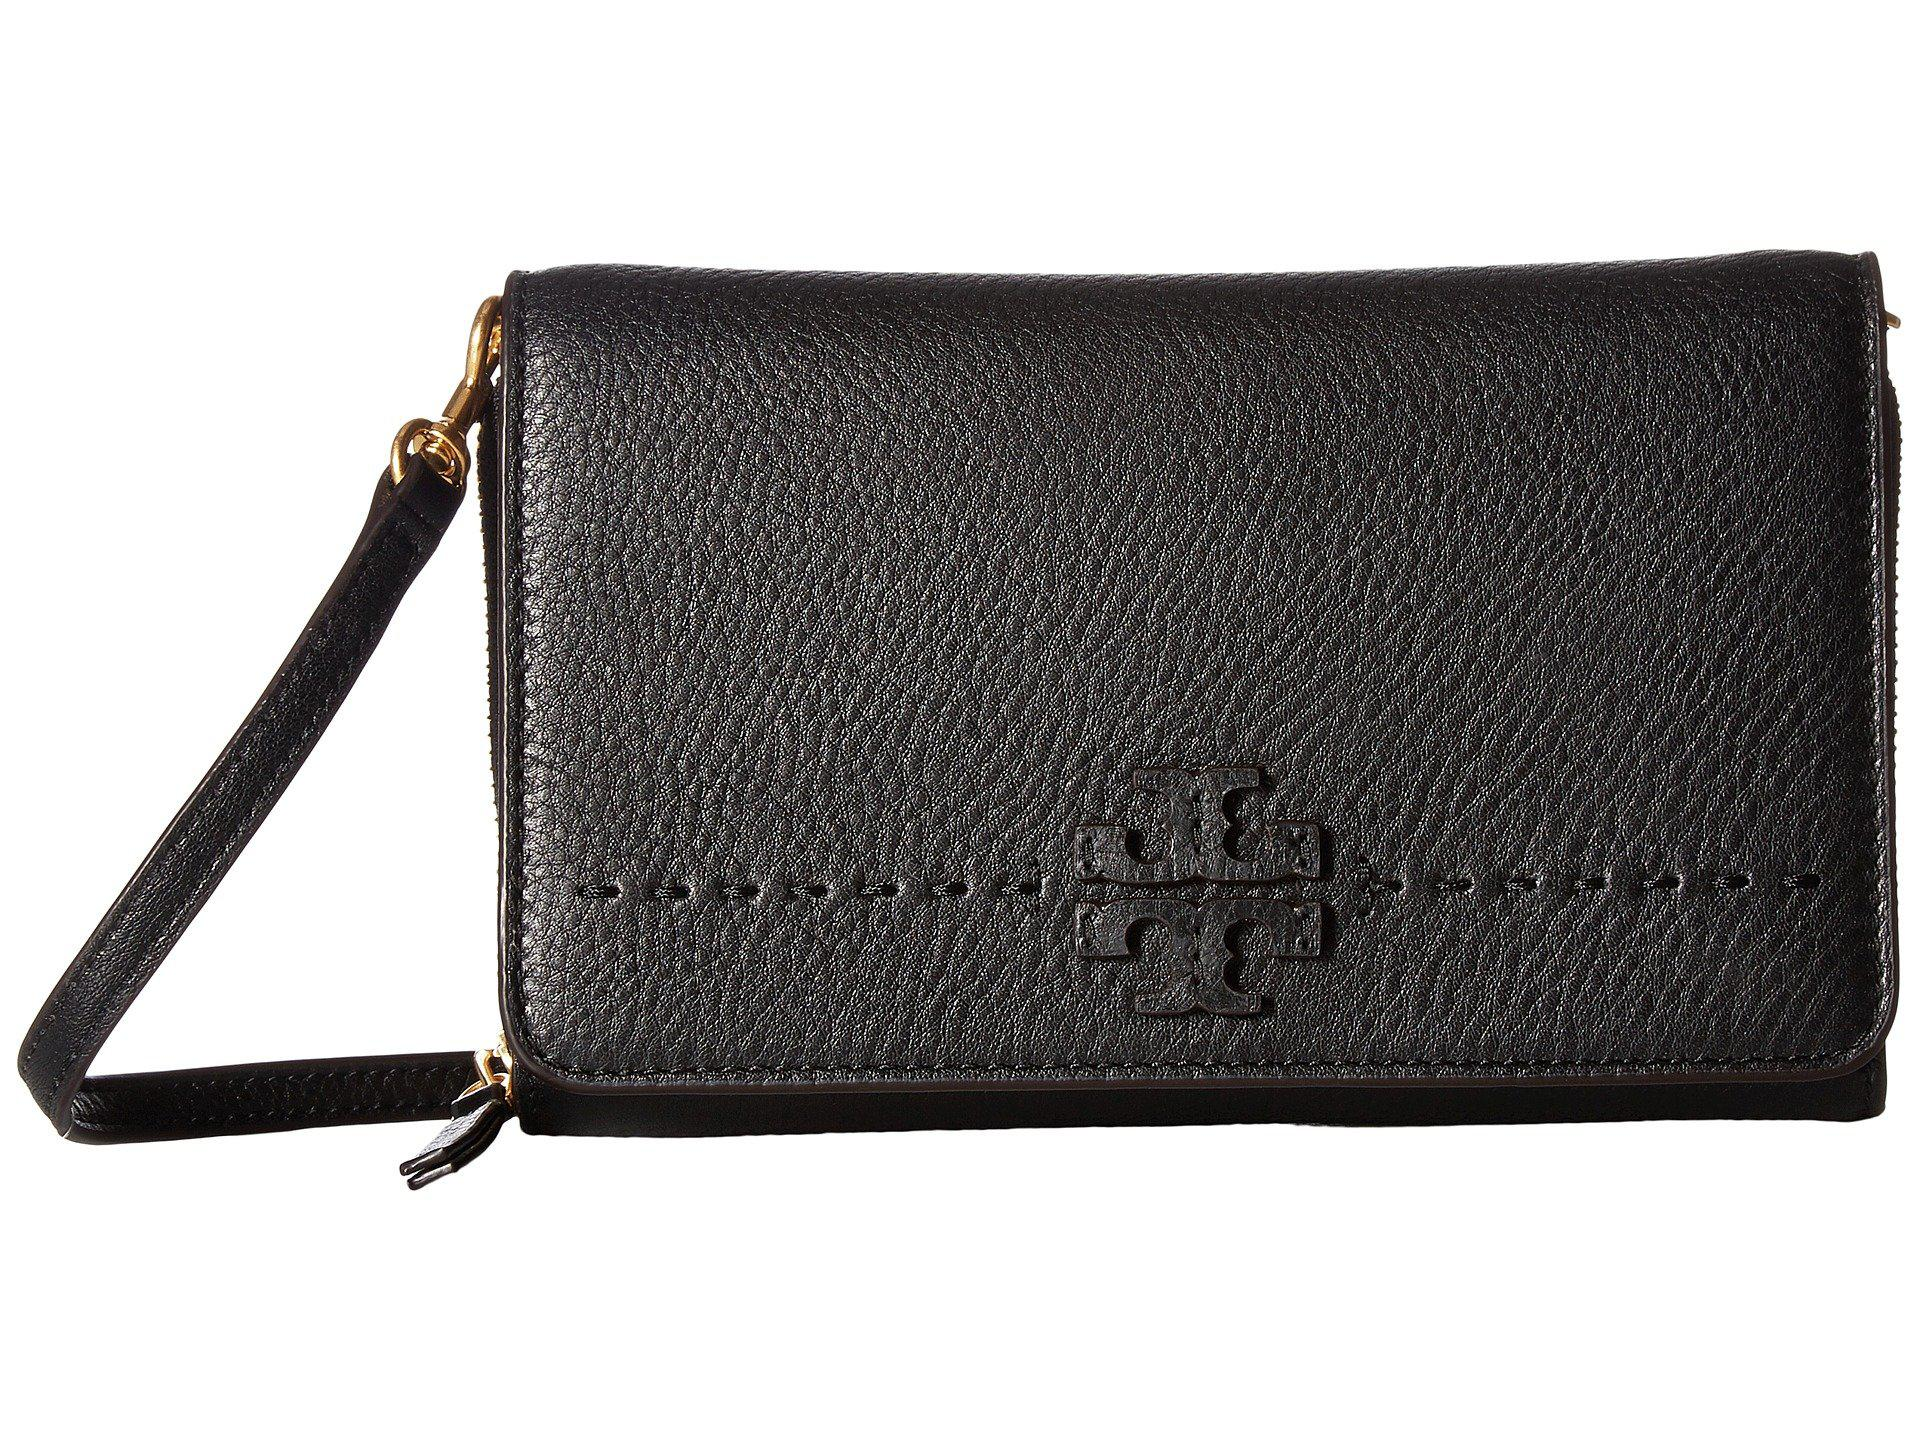 Tory Burch McGraw metallic flat wallet cross-body bag 2018 New For Sale Inexpensive Very Cheap For Sale Cheap Footlocker Pictures ZXjBm